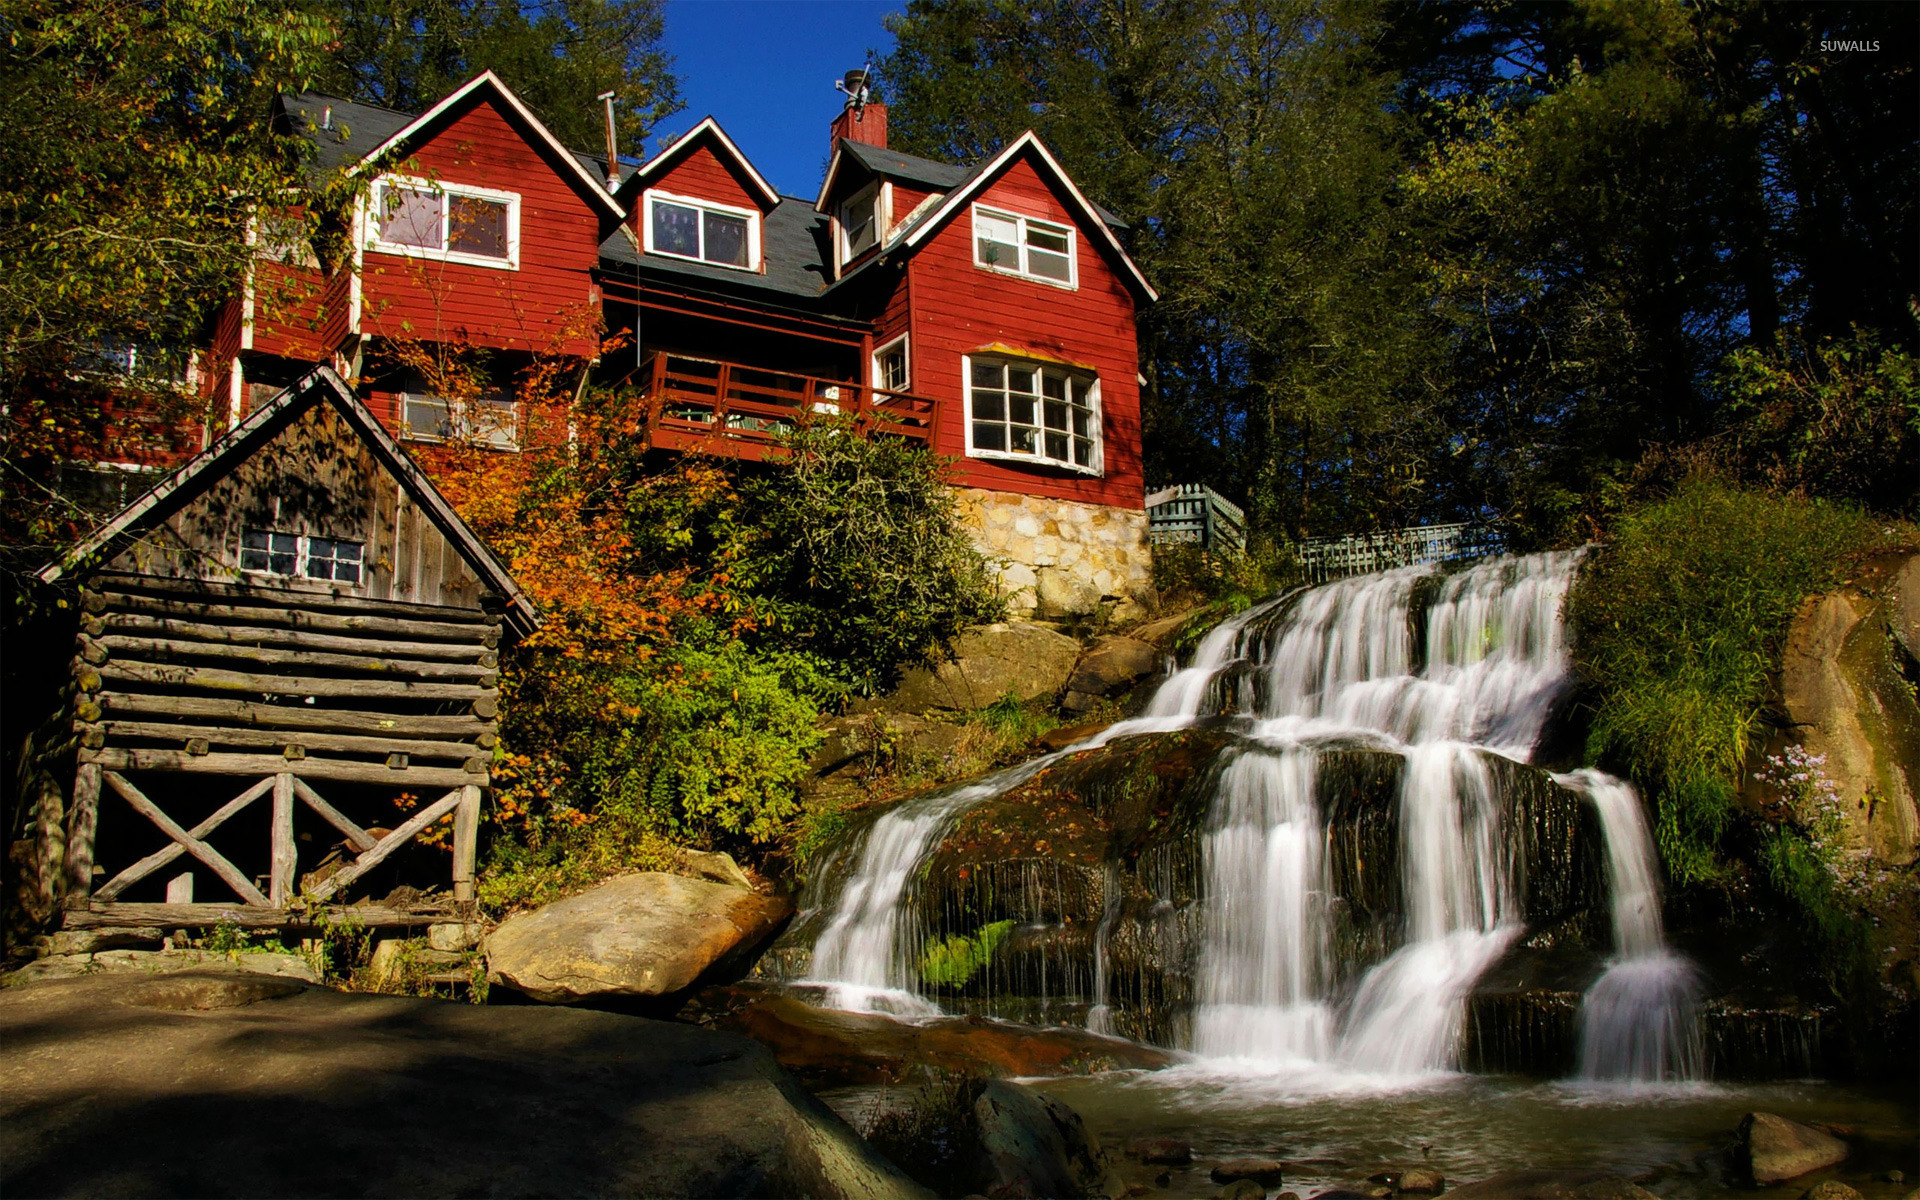 Water Fall And House Wall : Red house next to the waterfall wallpaper - World wallpapers - #23974